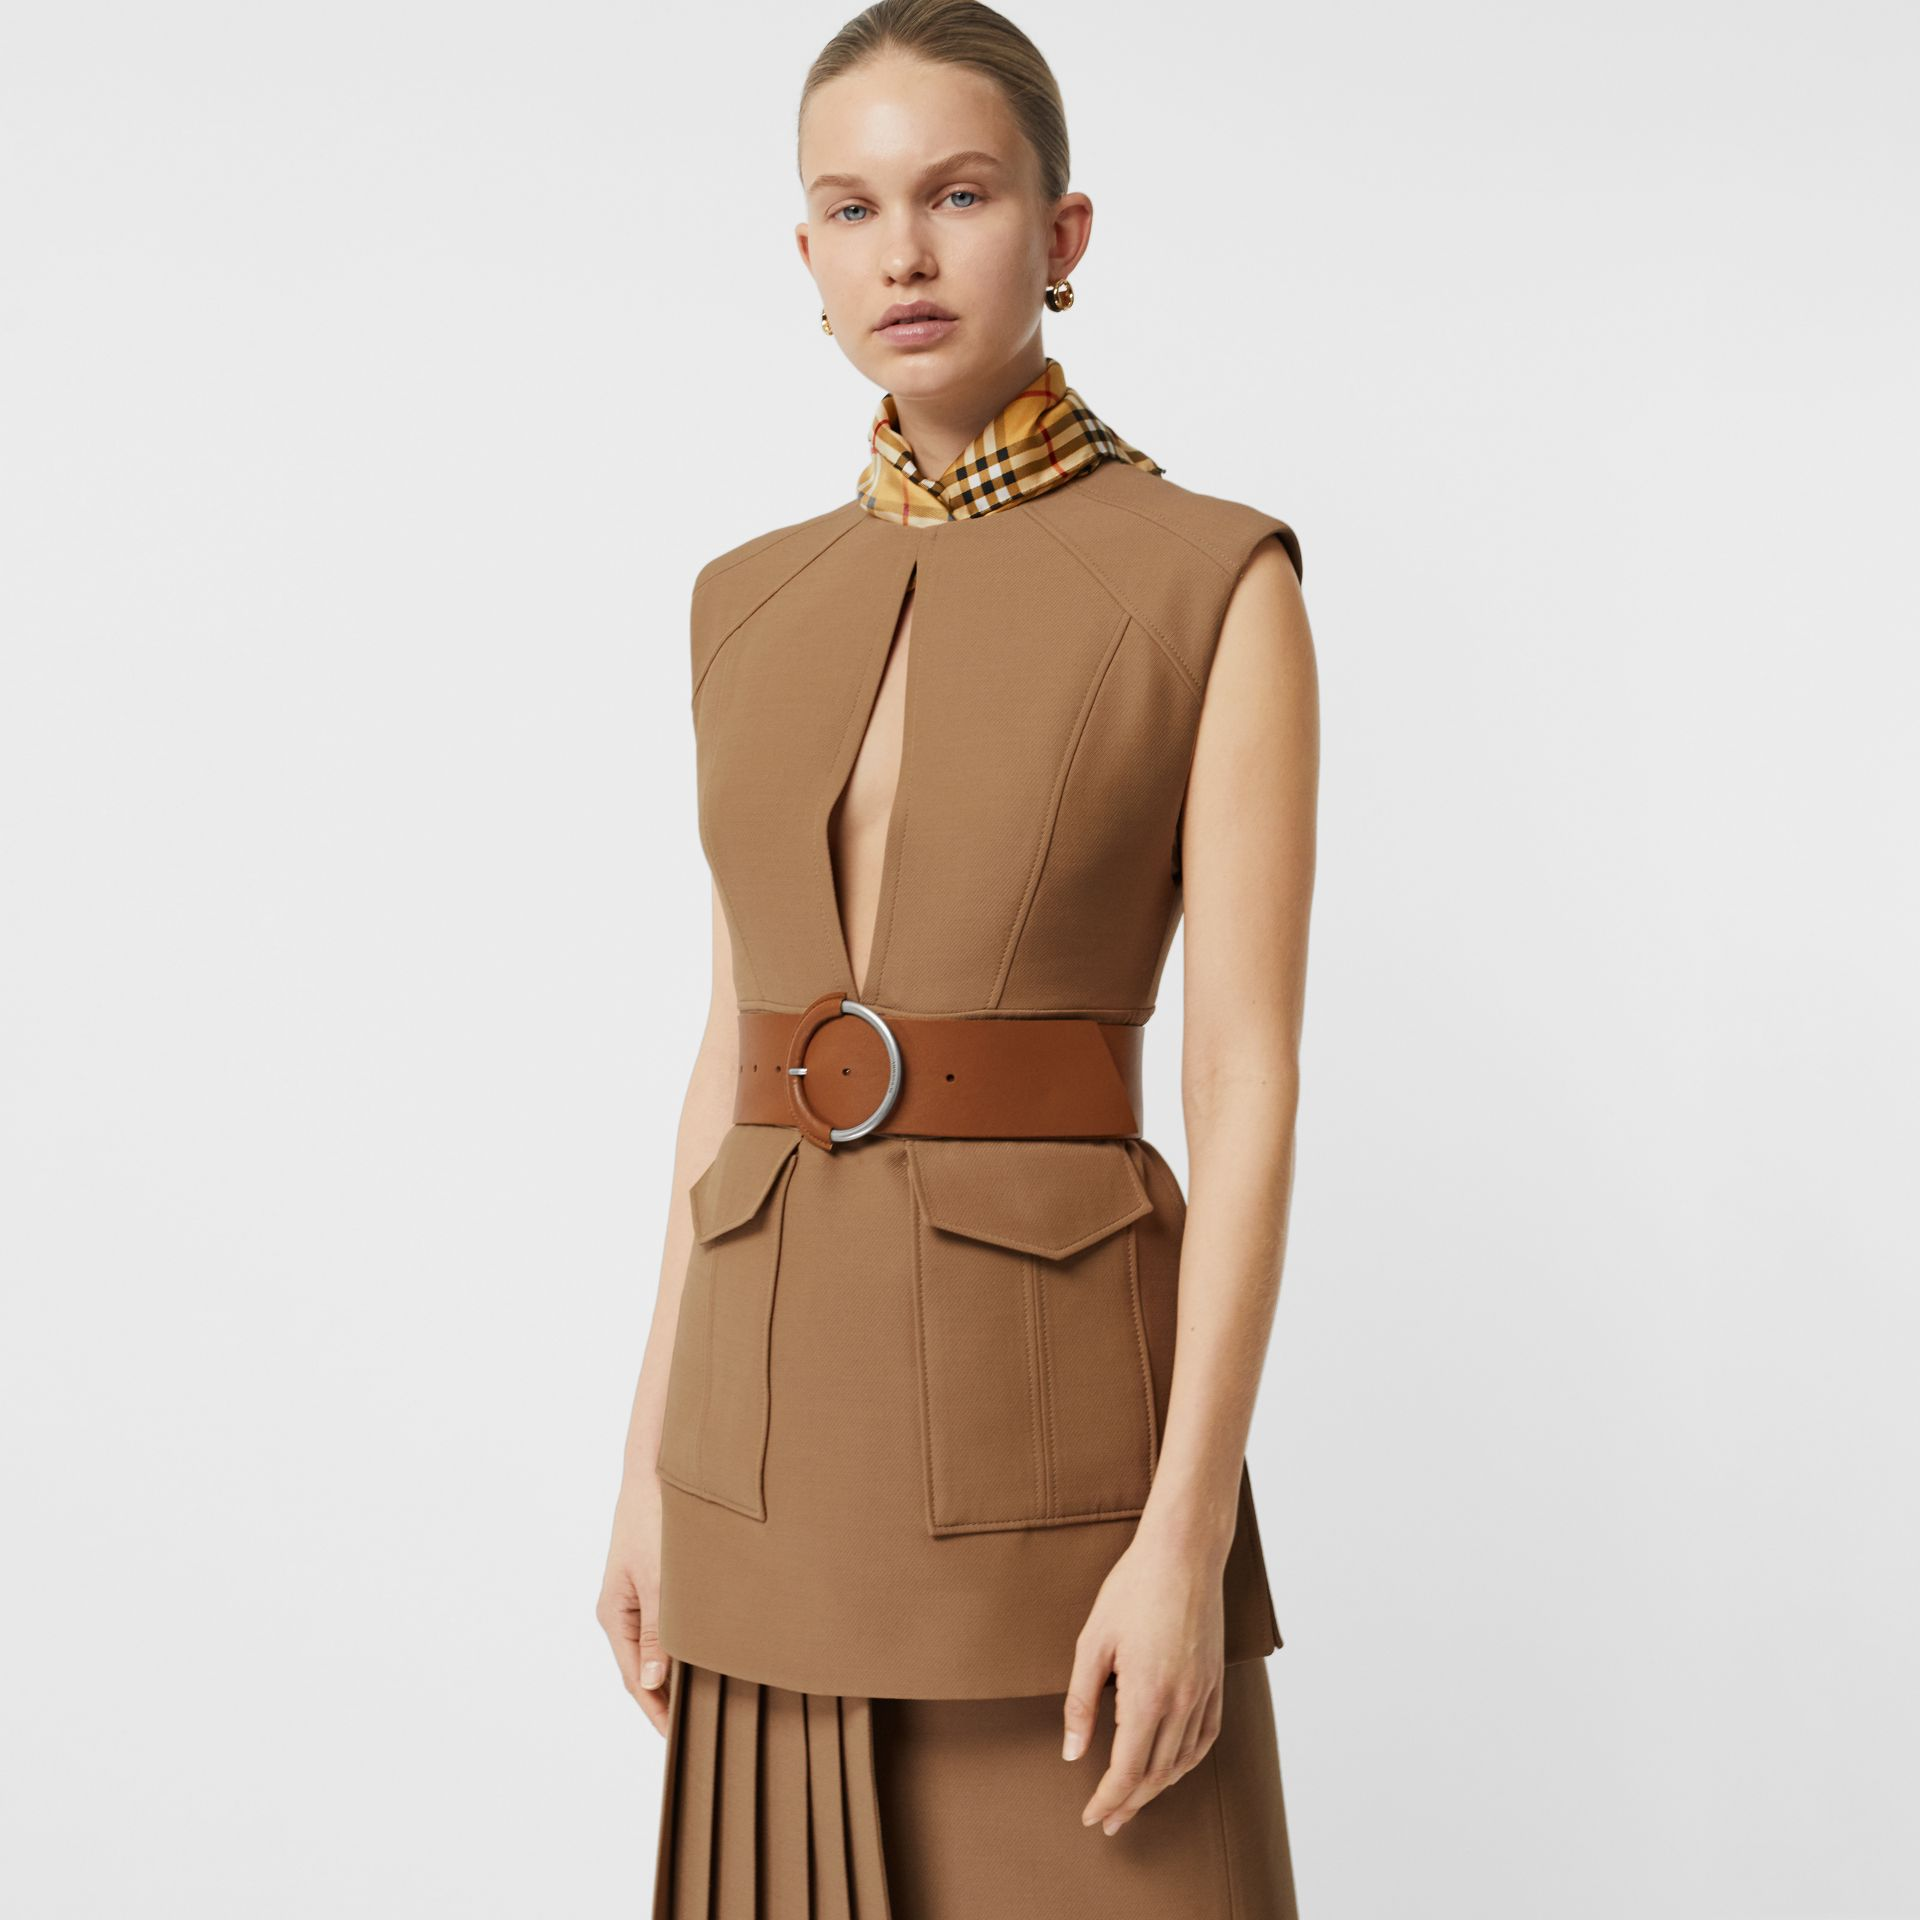 Keyhole Detail Sleeveless Wool Silk Top in Camel - Women | Burberry - gallery image 4